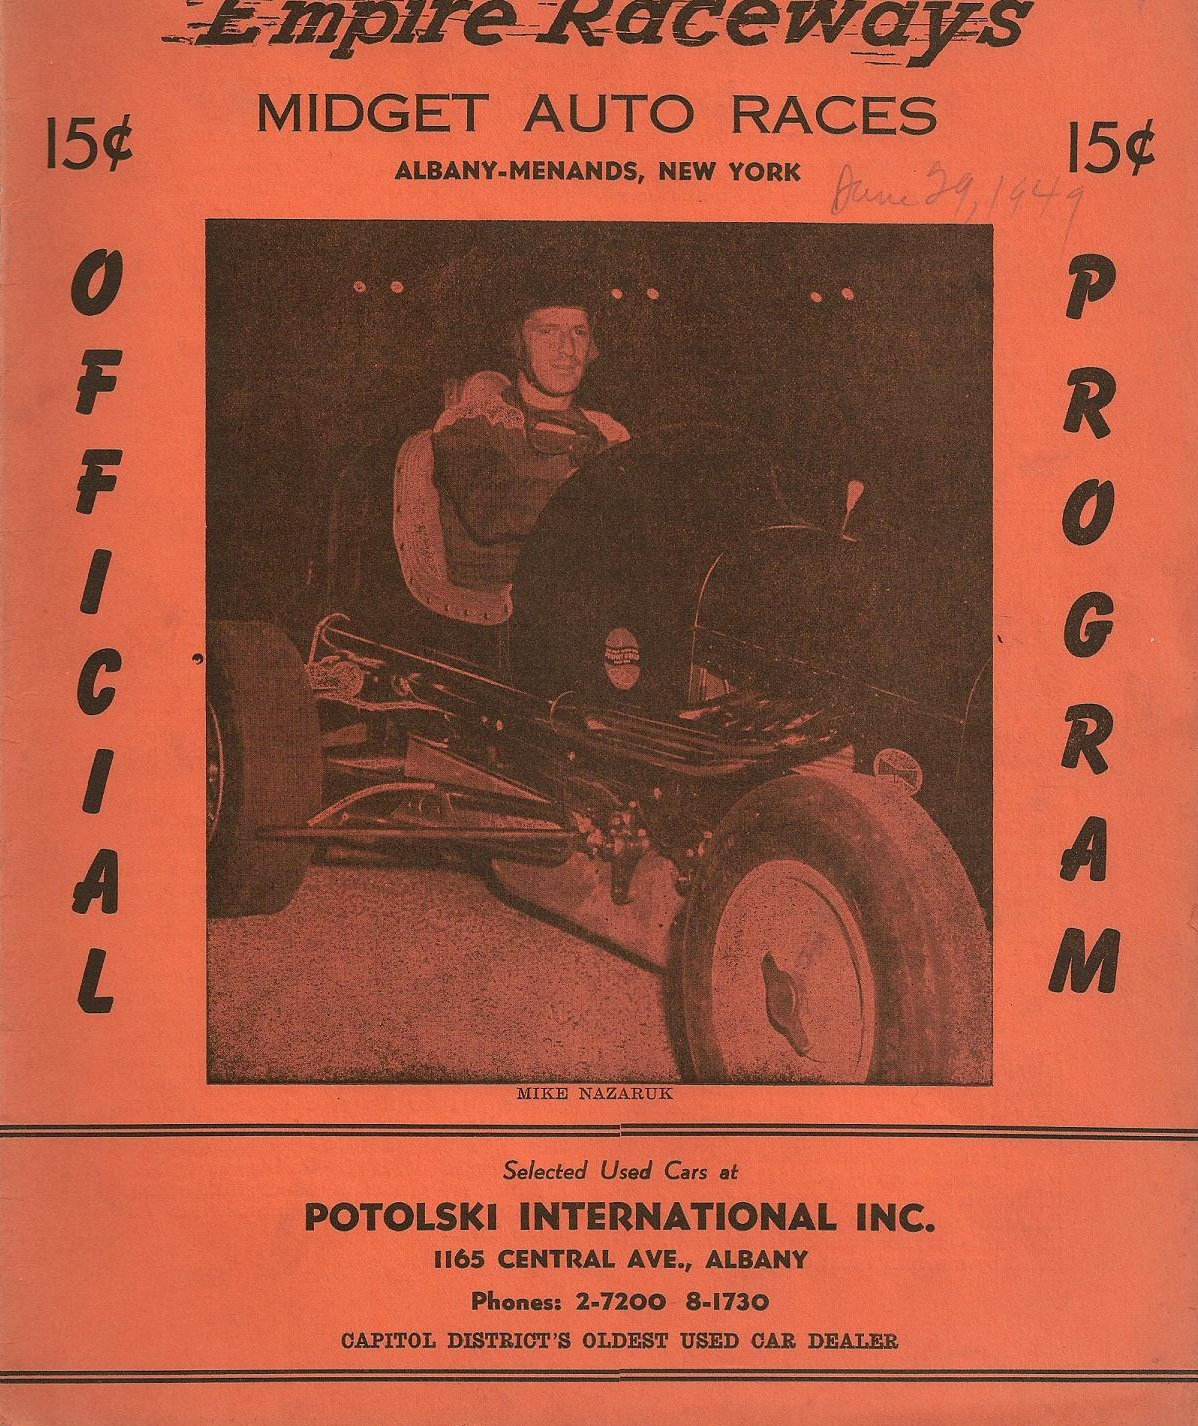 Empire Raceways   The Motor Racing Programme Covers Project